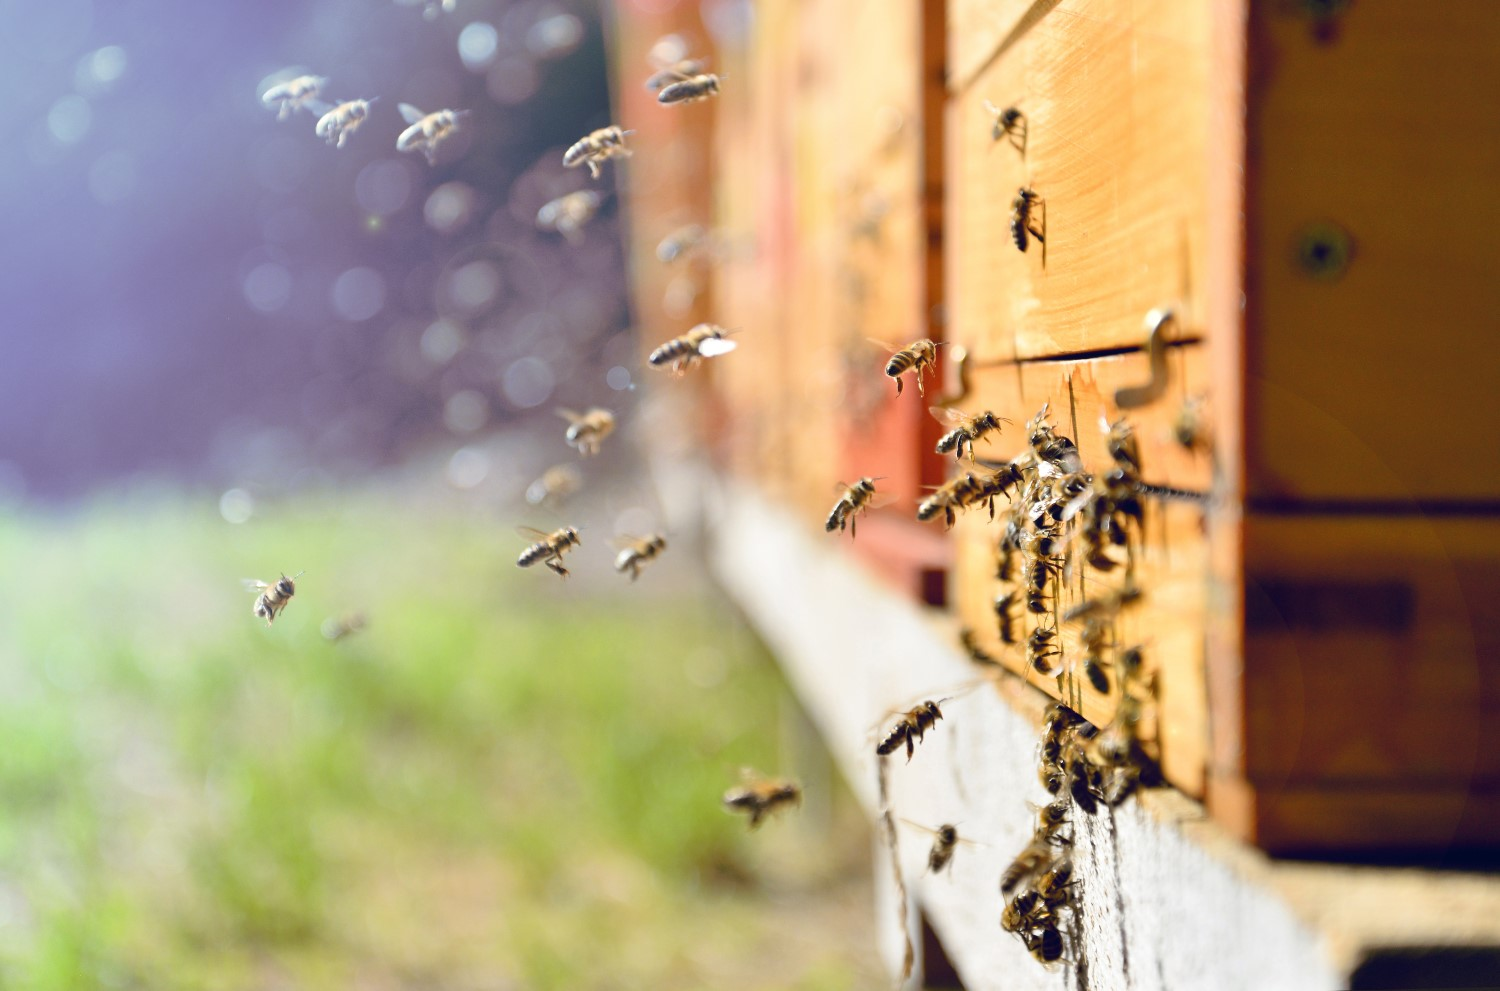 Steem Fork Faces Legal Threat From Mining Firm Over 'Hive' Name ...